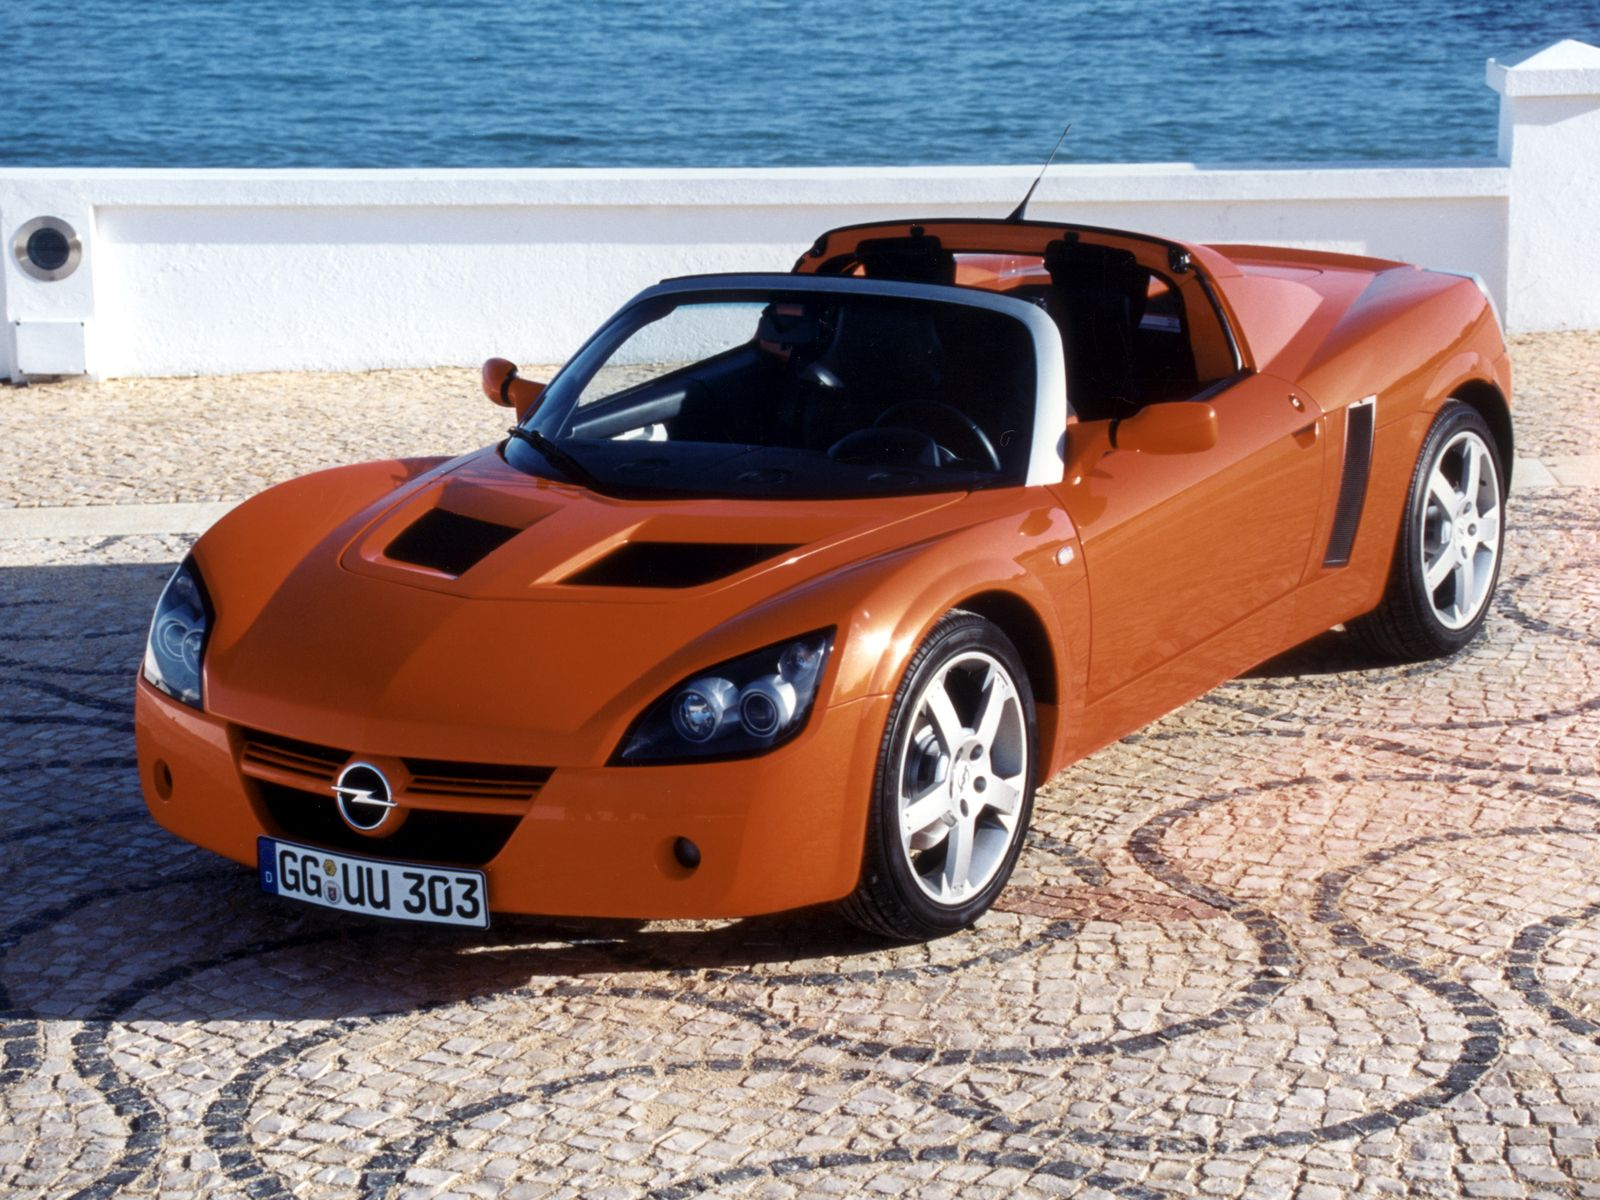 The Opel Speedster Convertible Orange Color Car Photo